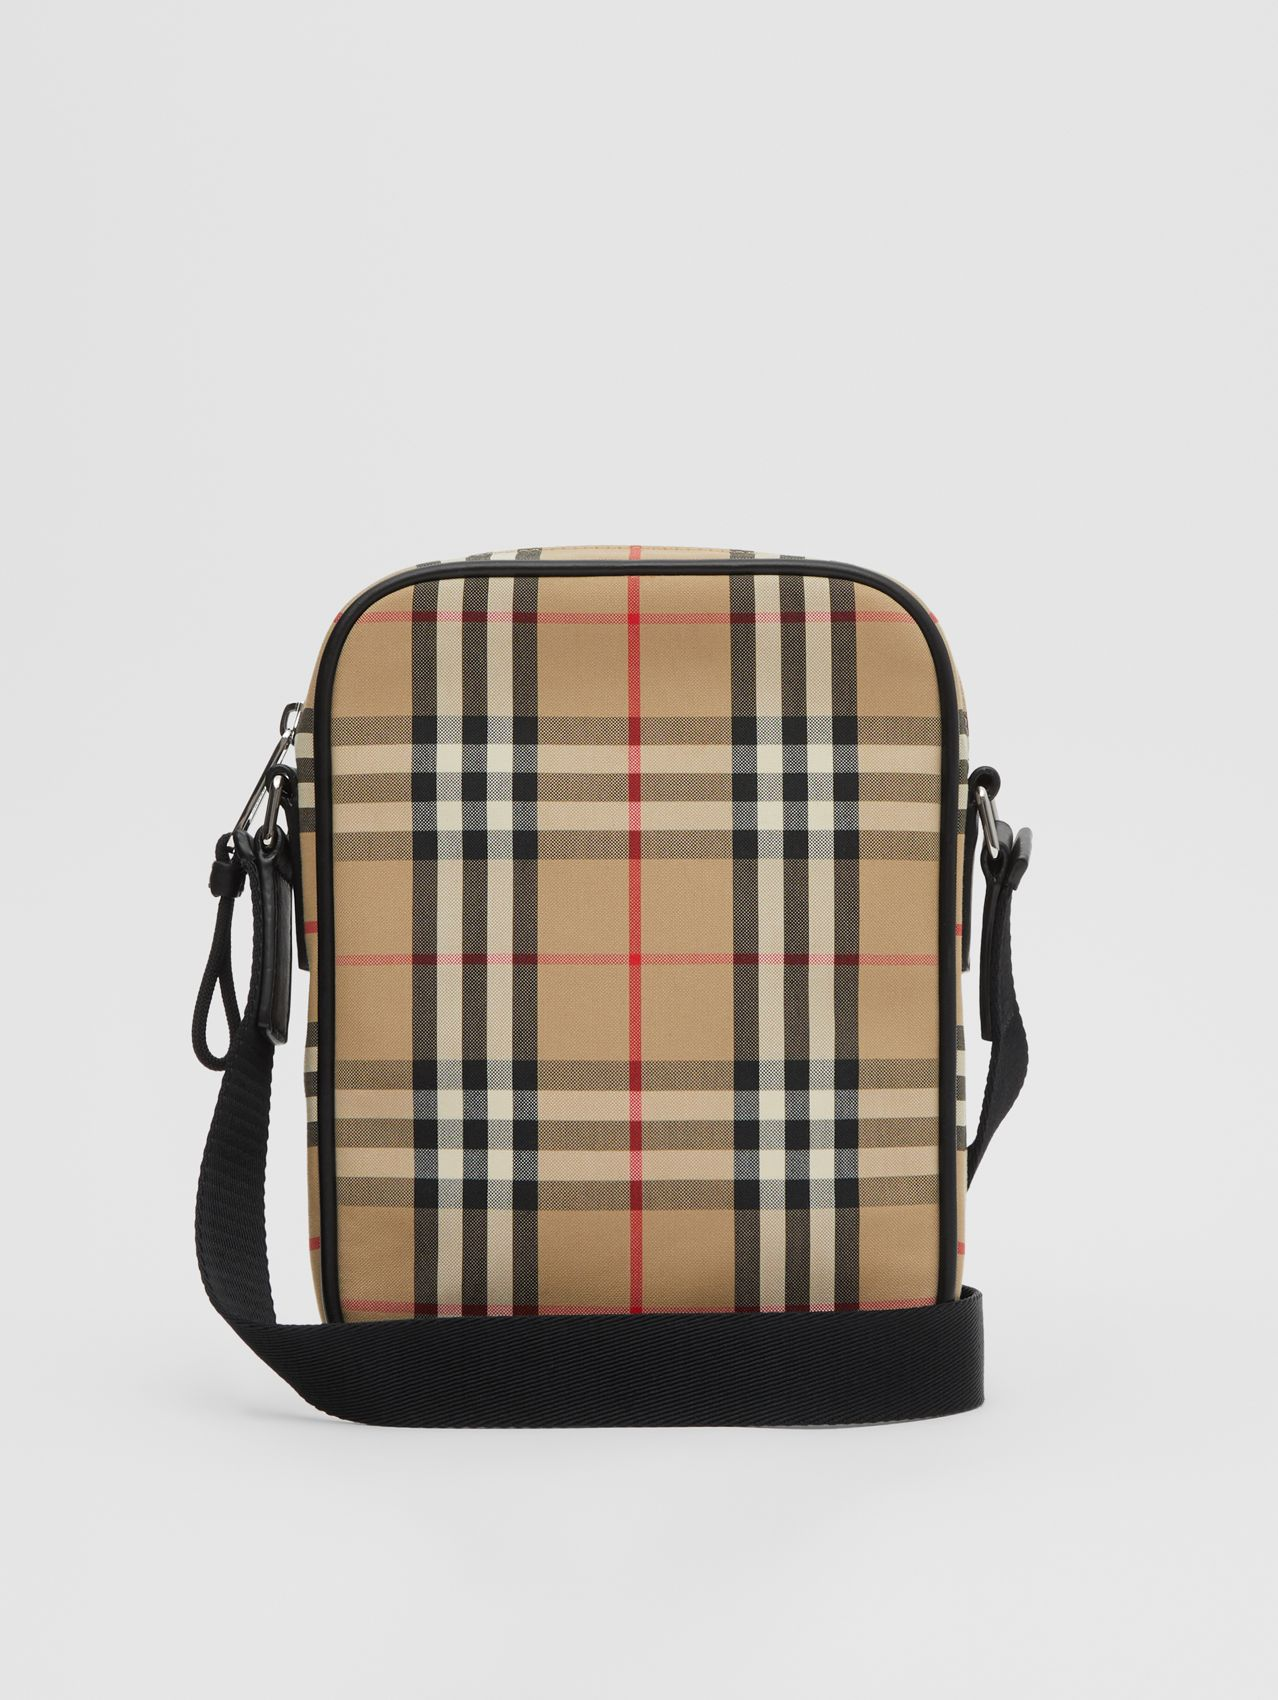 Vintage Check and Leather Crossbody Bag (Archive Beige)